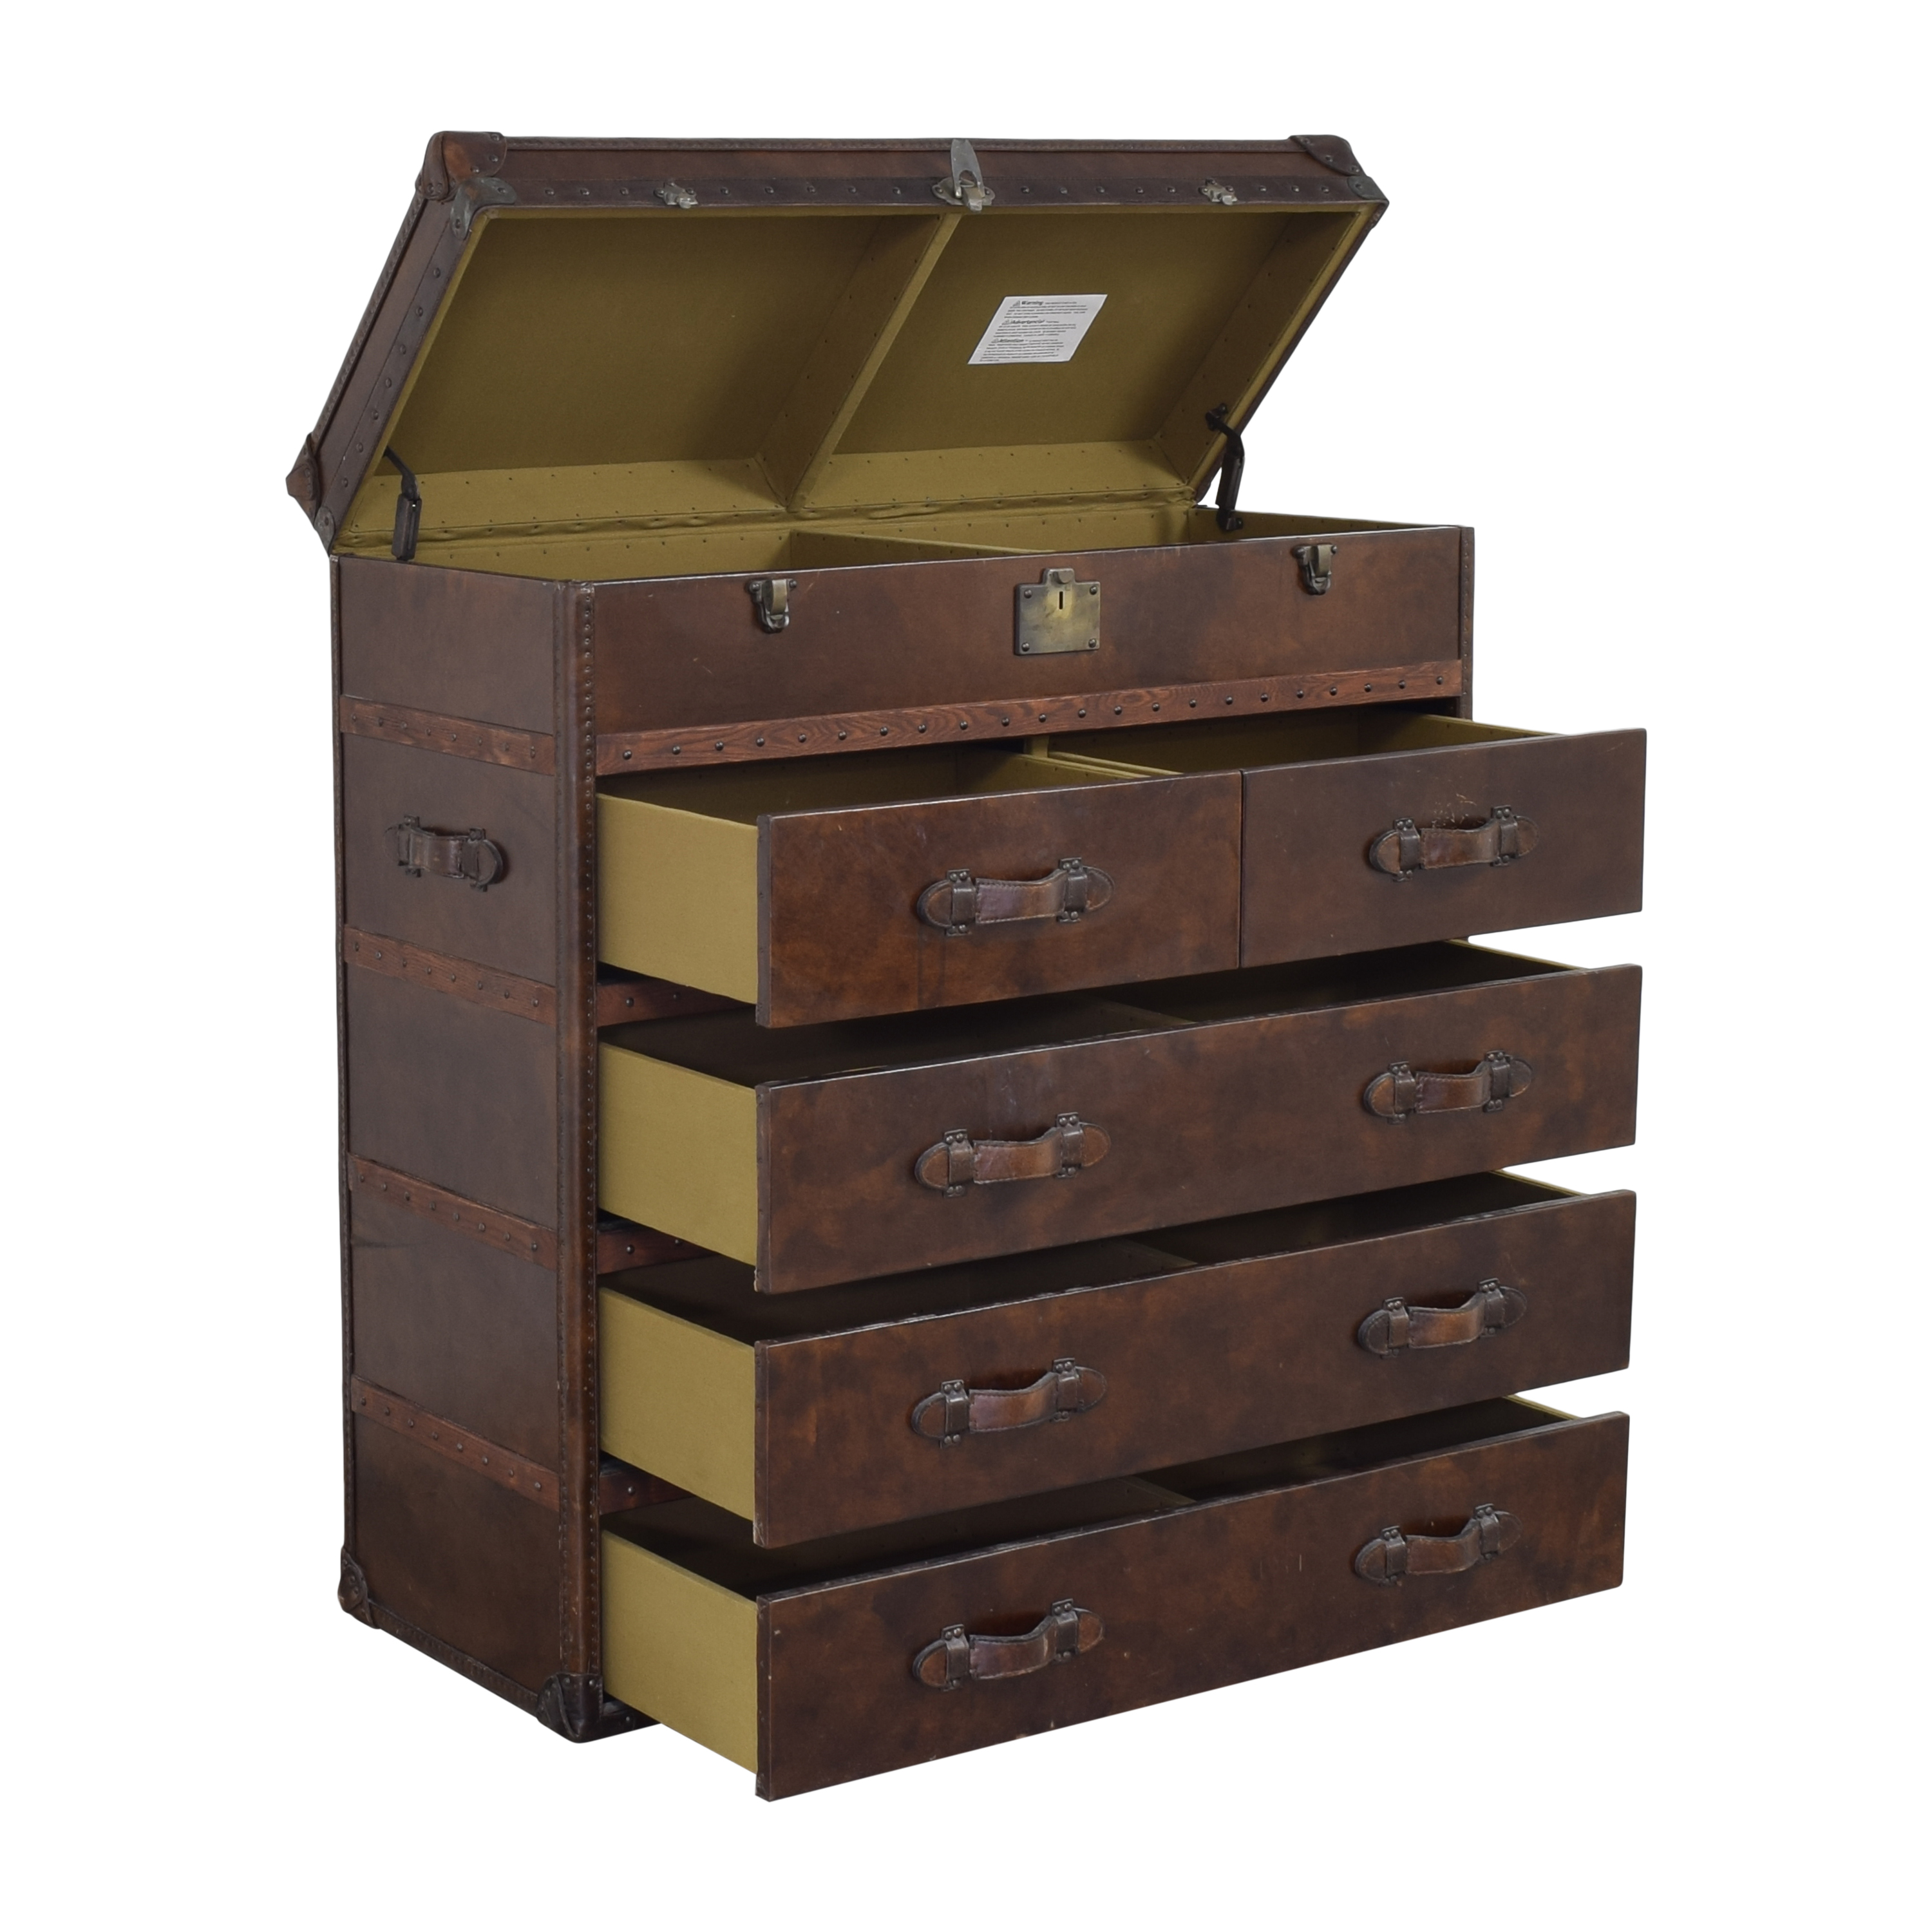 Restoration Hardware Restoration Hardware Mayfair Steamer Trunk Chest  coupon